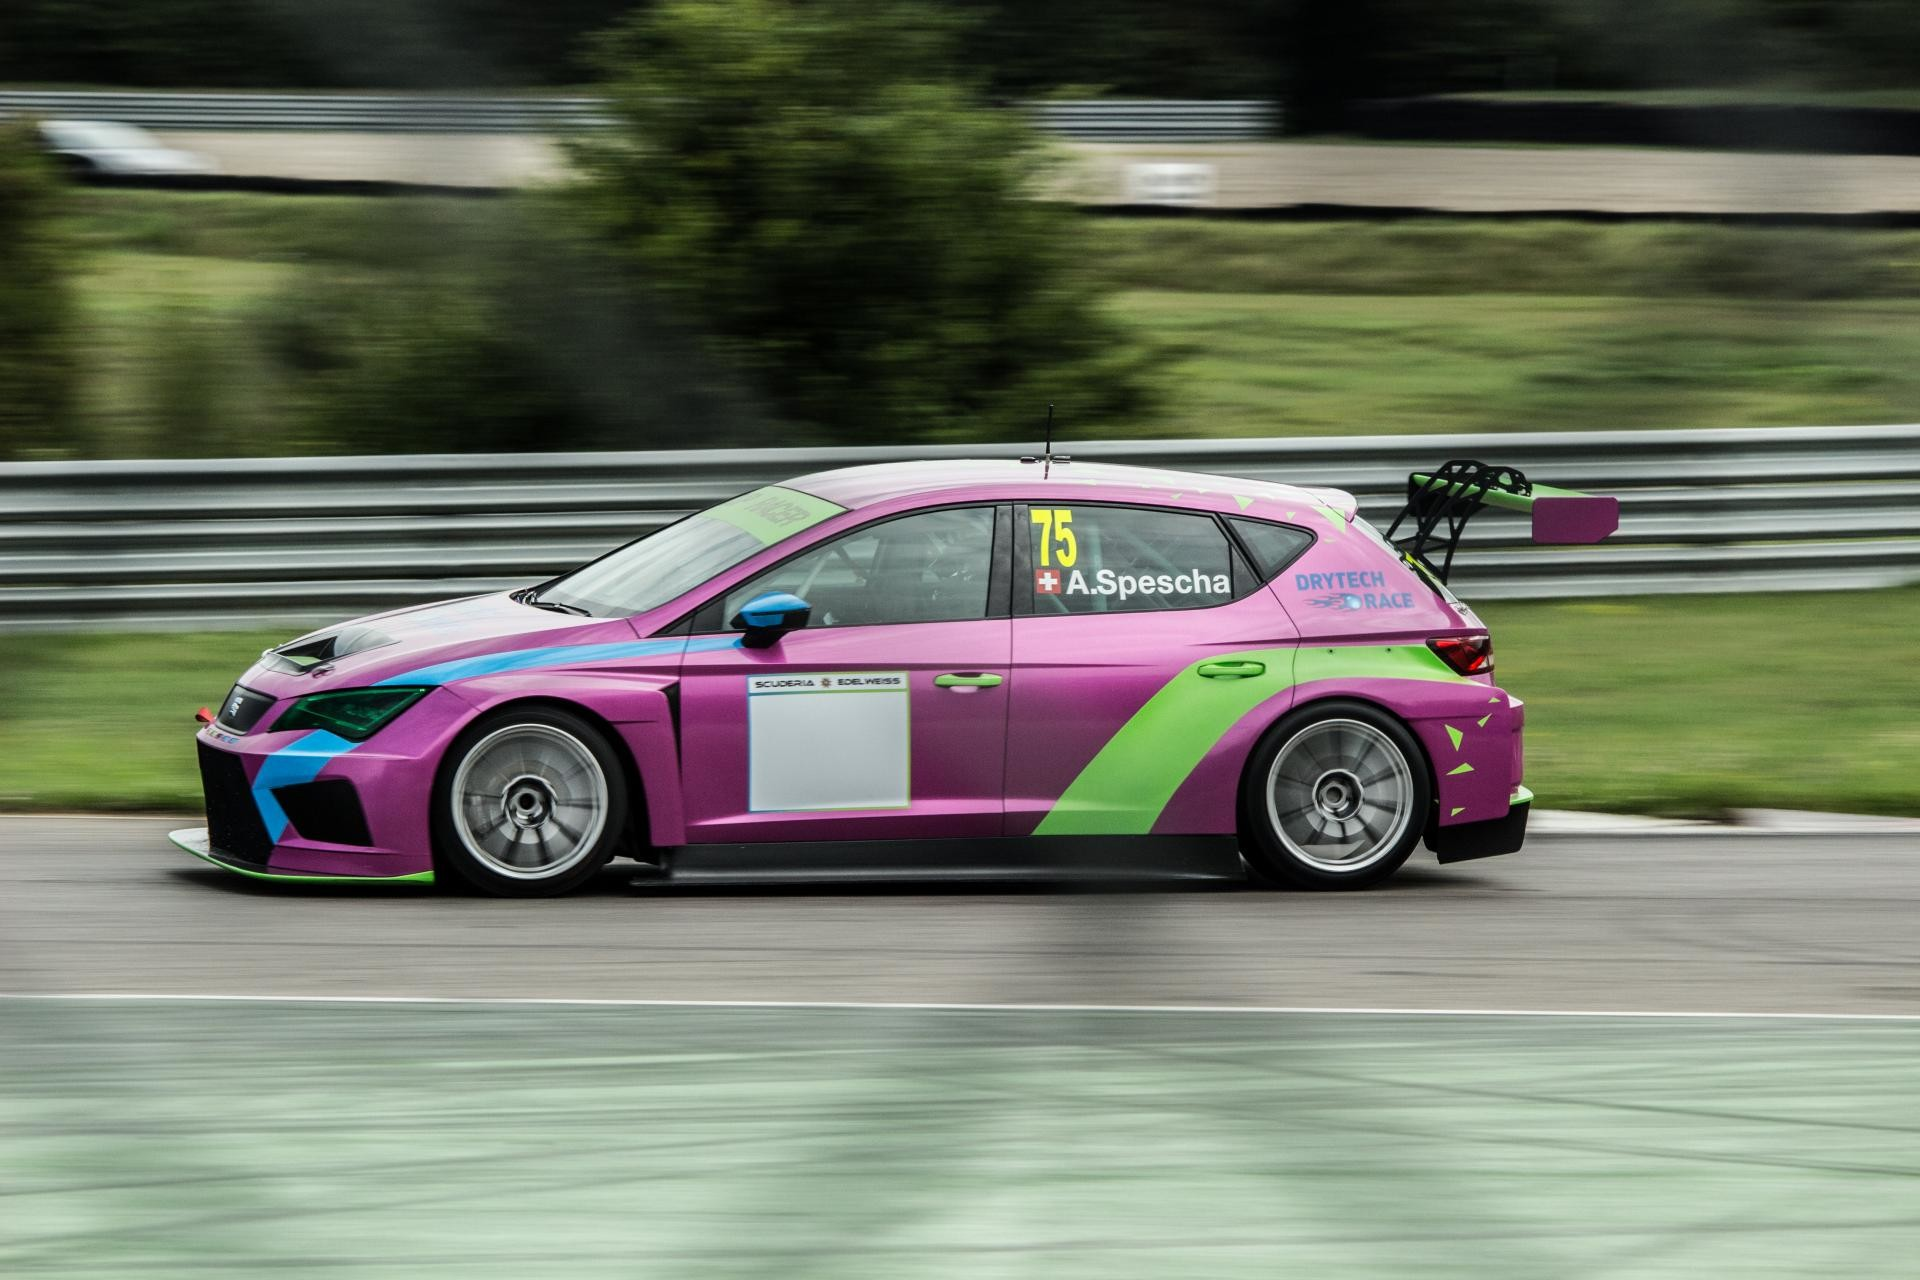 28072017-IMG_6927 - Seat Leon Cup Racer m